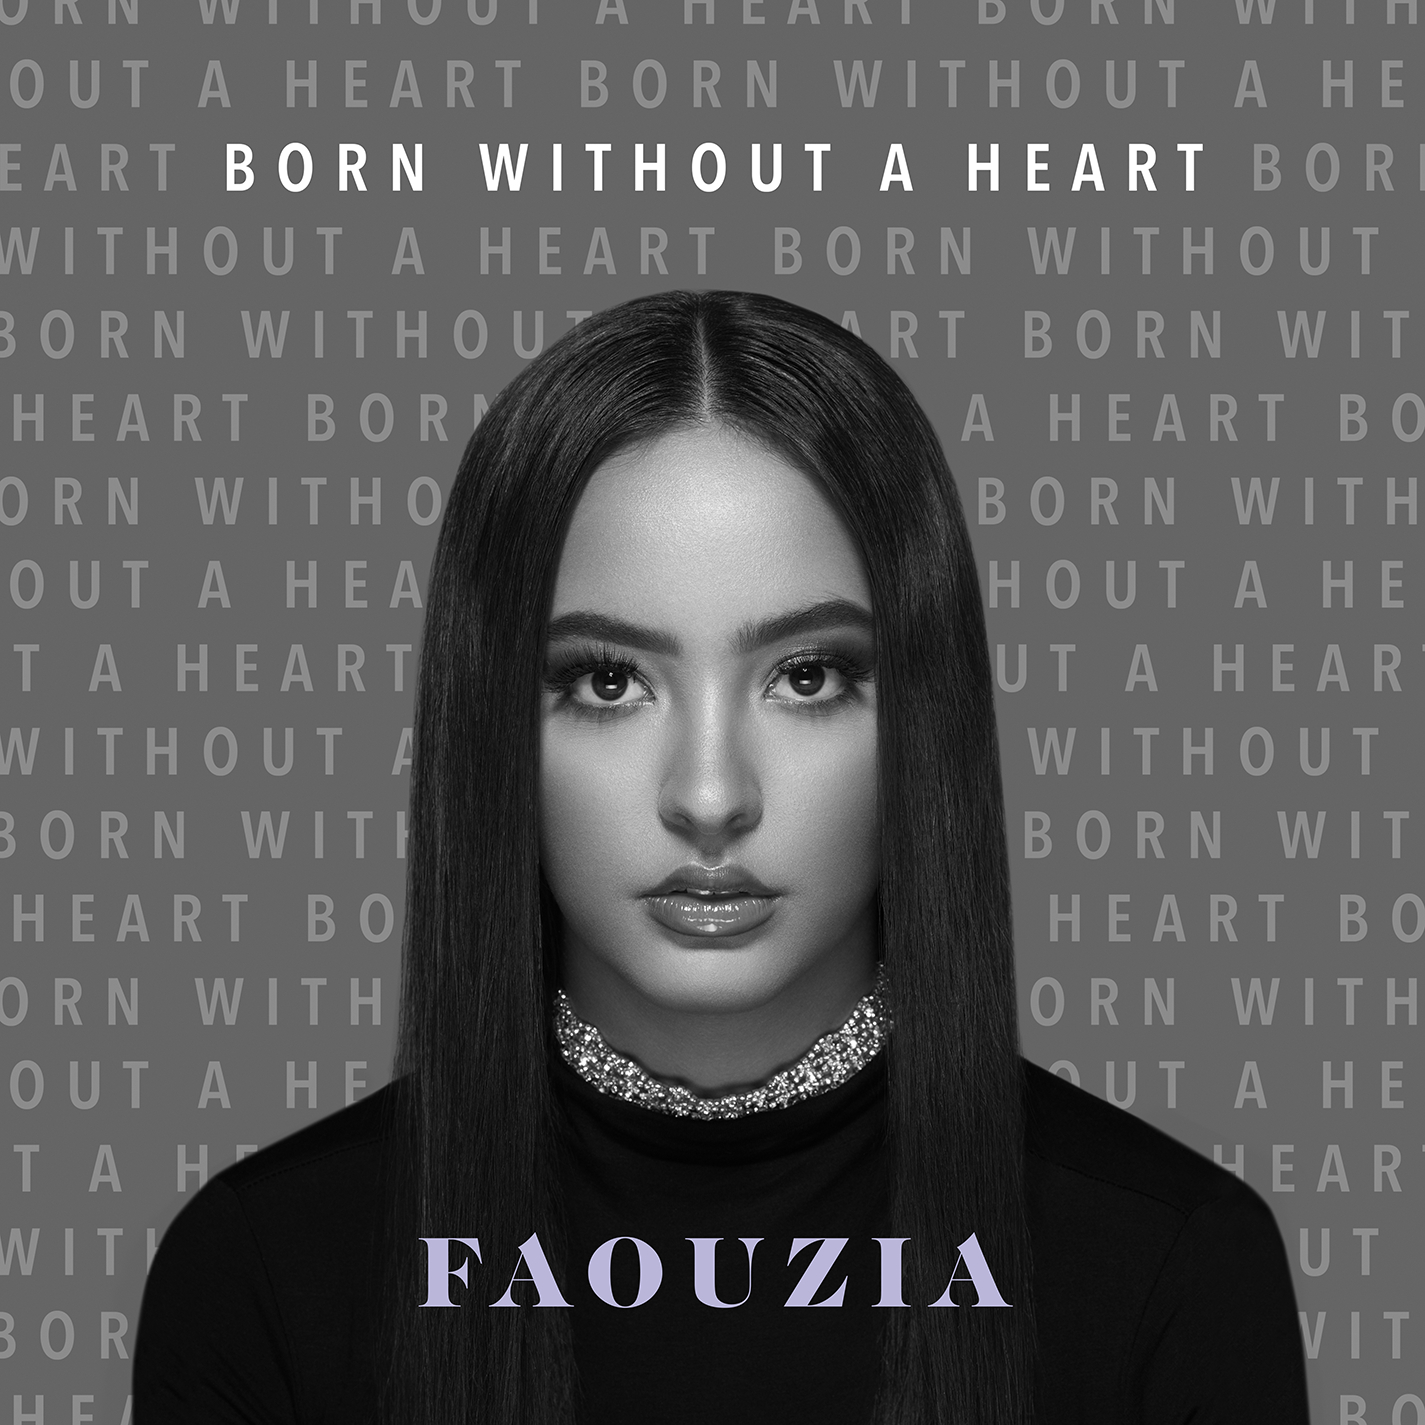 Faouzia Born Without A Heart